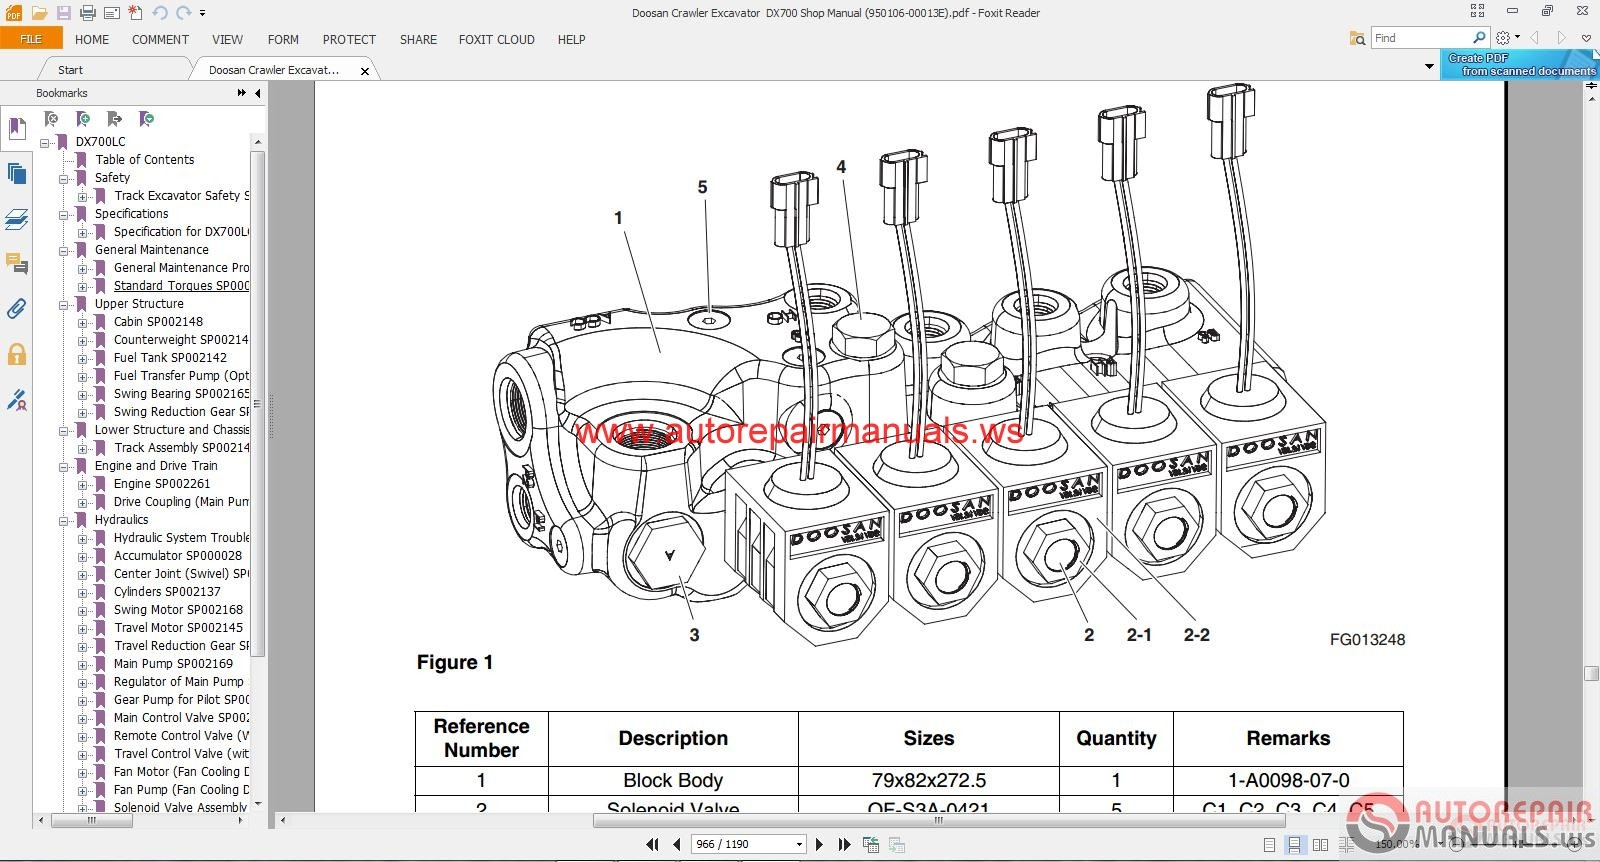 Doosan Forklift Wiring Diagram. Diagrams. Wiring Diagram Images